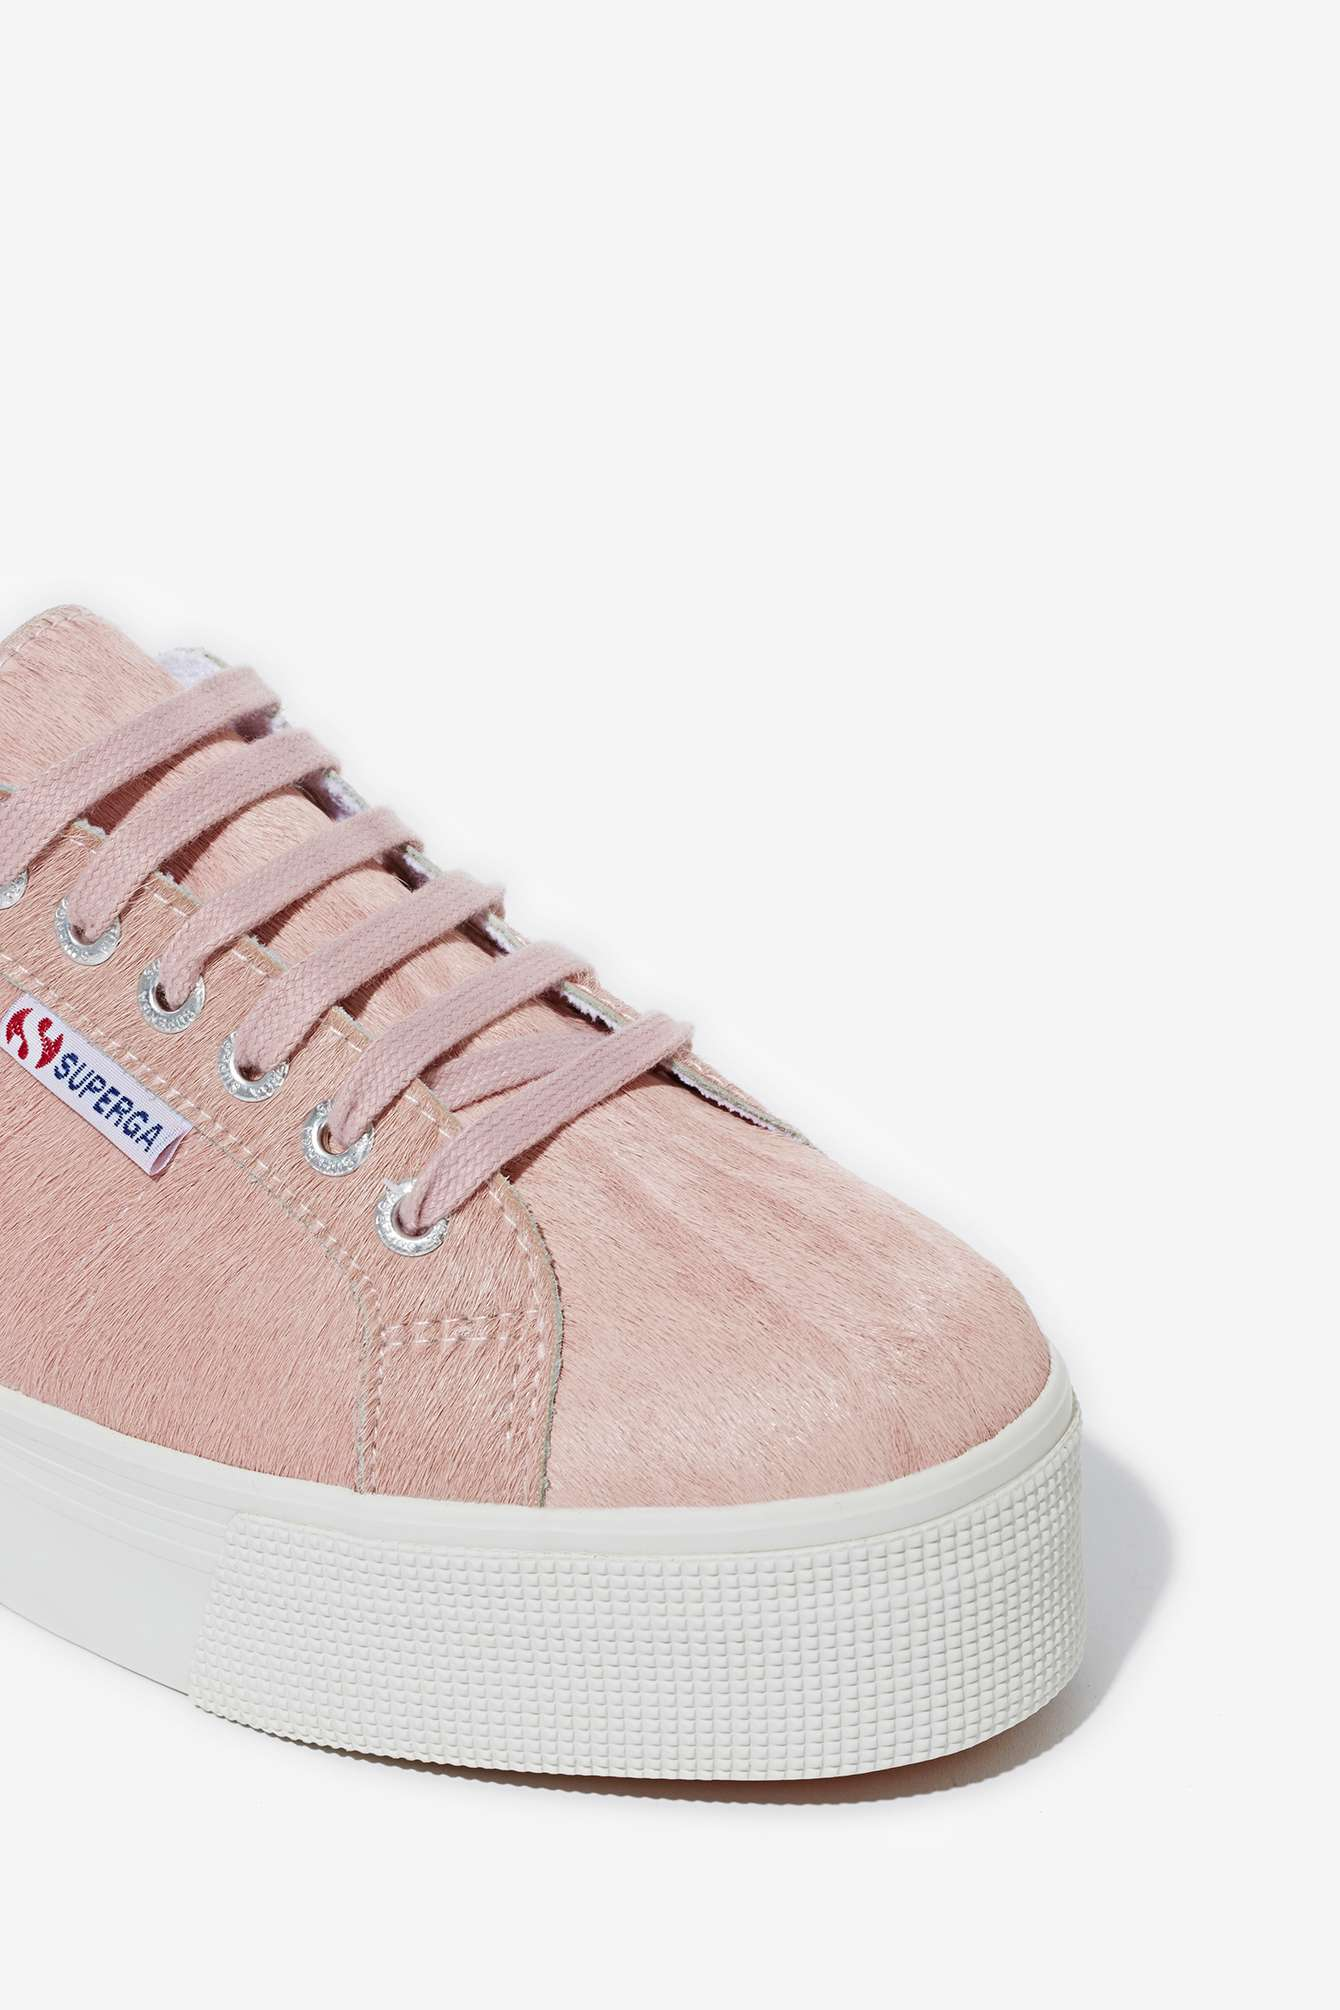 Where To Buy Superga Shoes